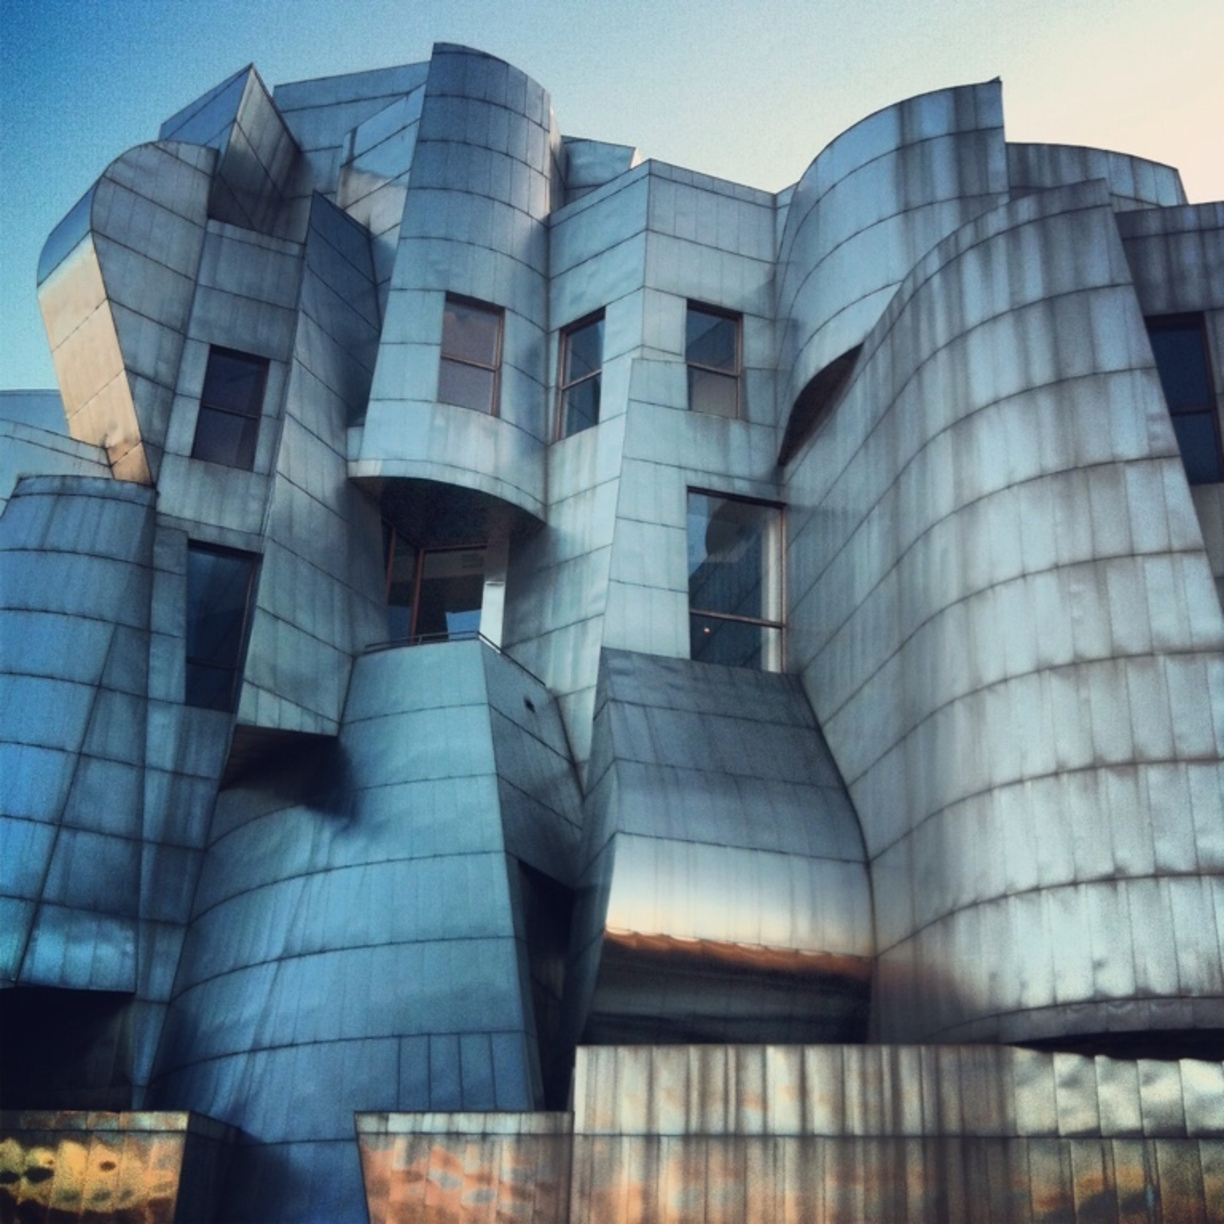 The Frederick R Weisman Art Museum